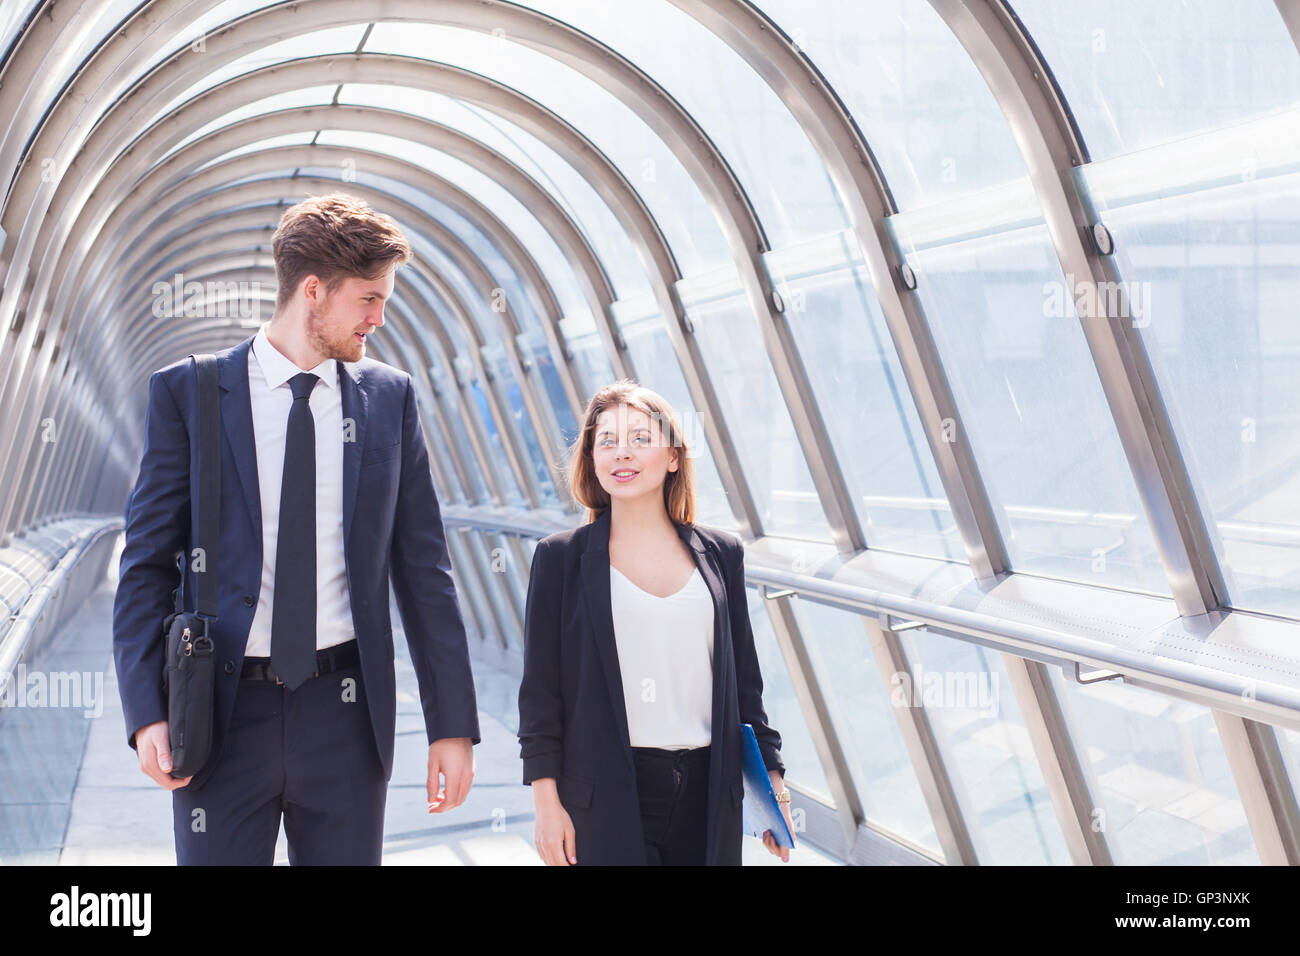 business people walking in office corridor interior Stock Photo